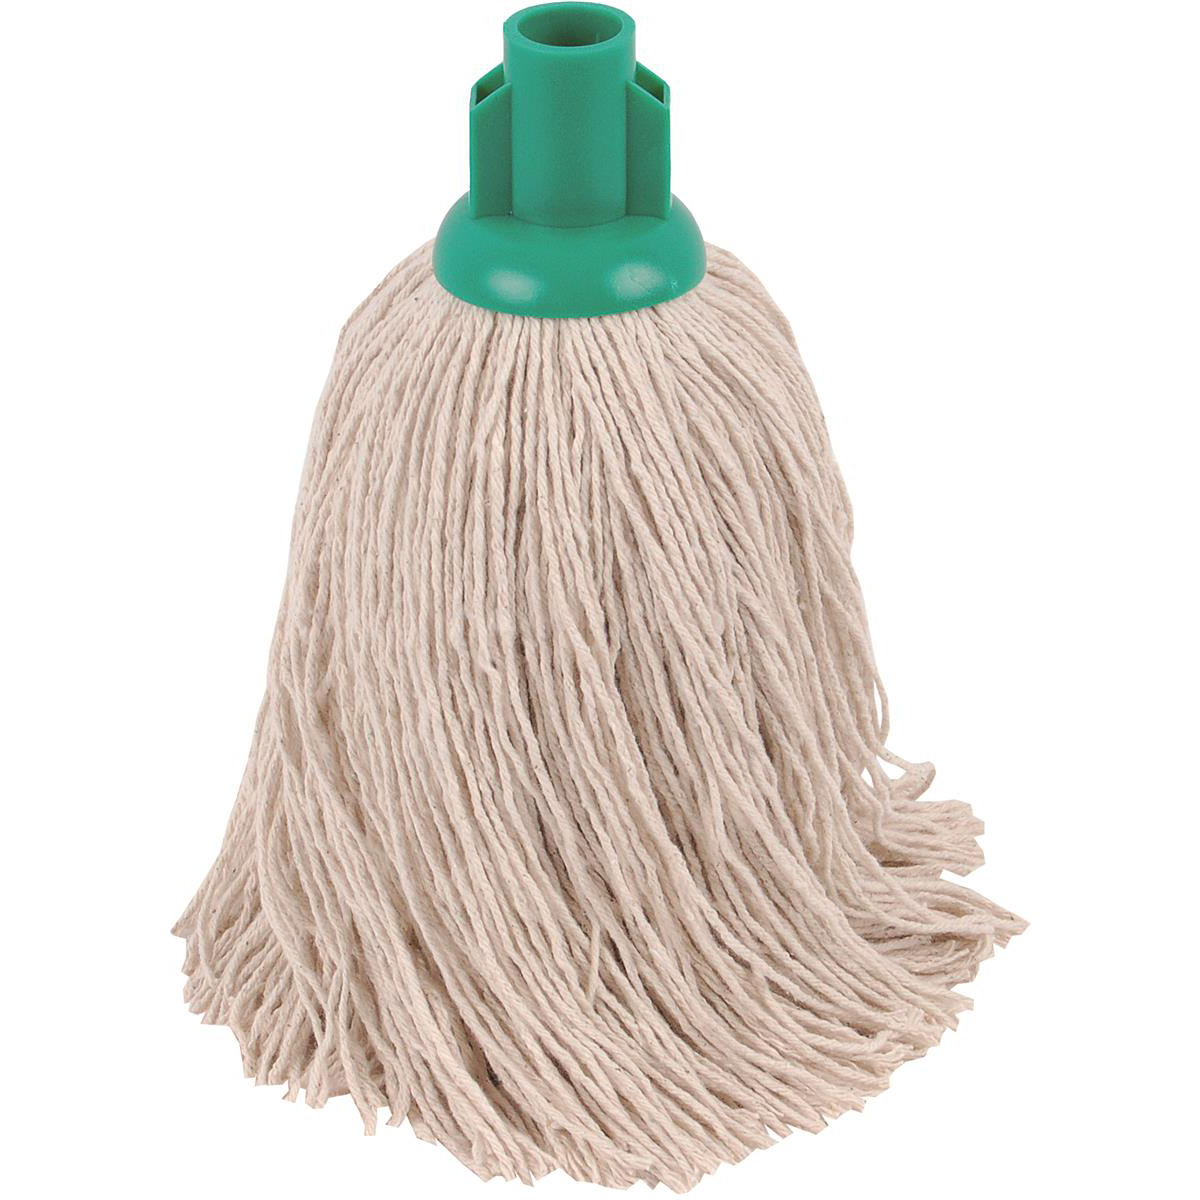 Robert Scott & Sons Twine Socket Mop for Rough Surfaces 16oz Green Ref 101858GREEN [Pack 10]